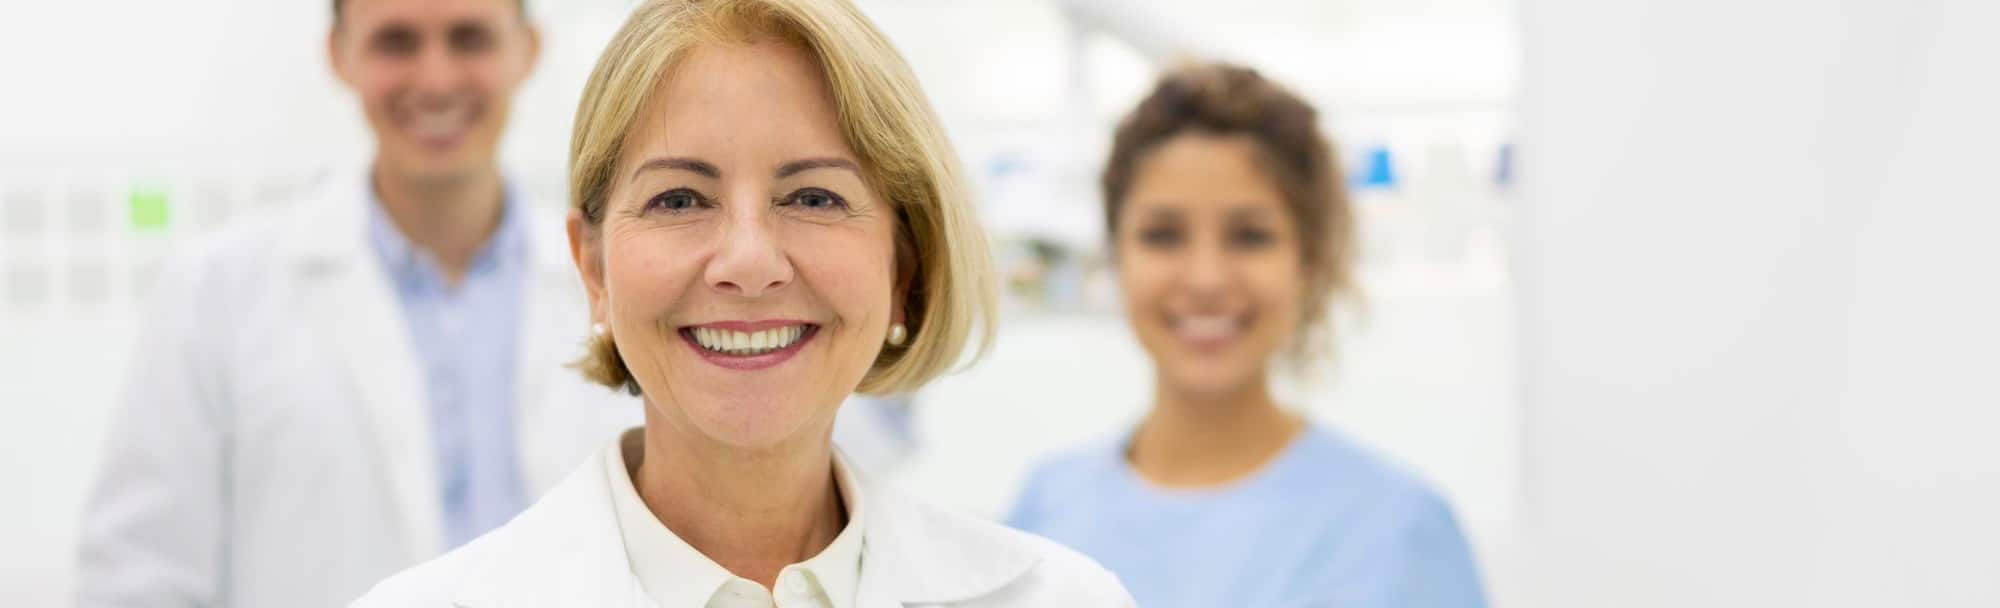 close-up of a female doctor standing in front of two medical assistants